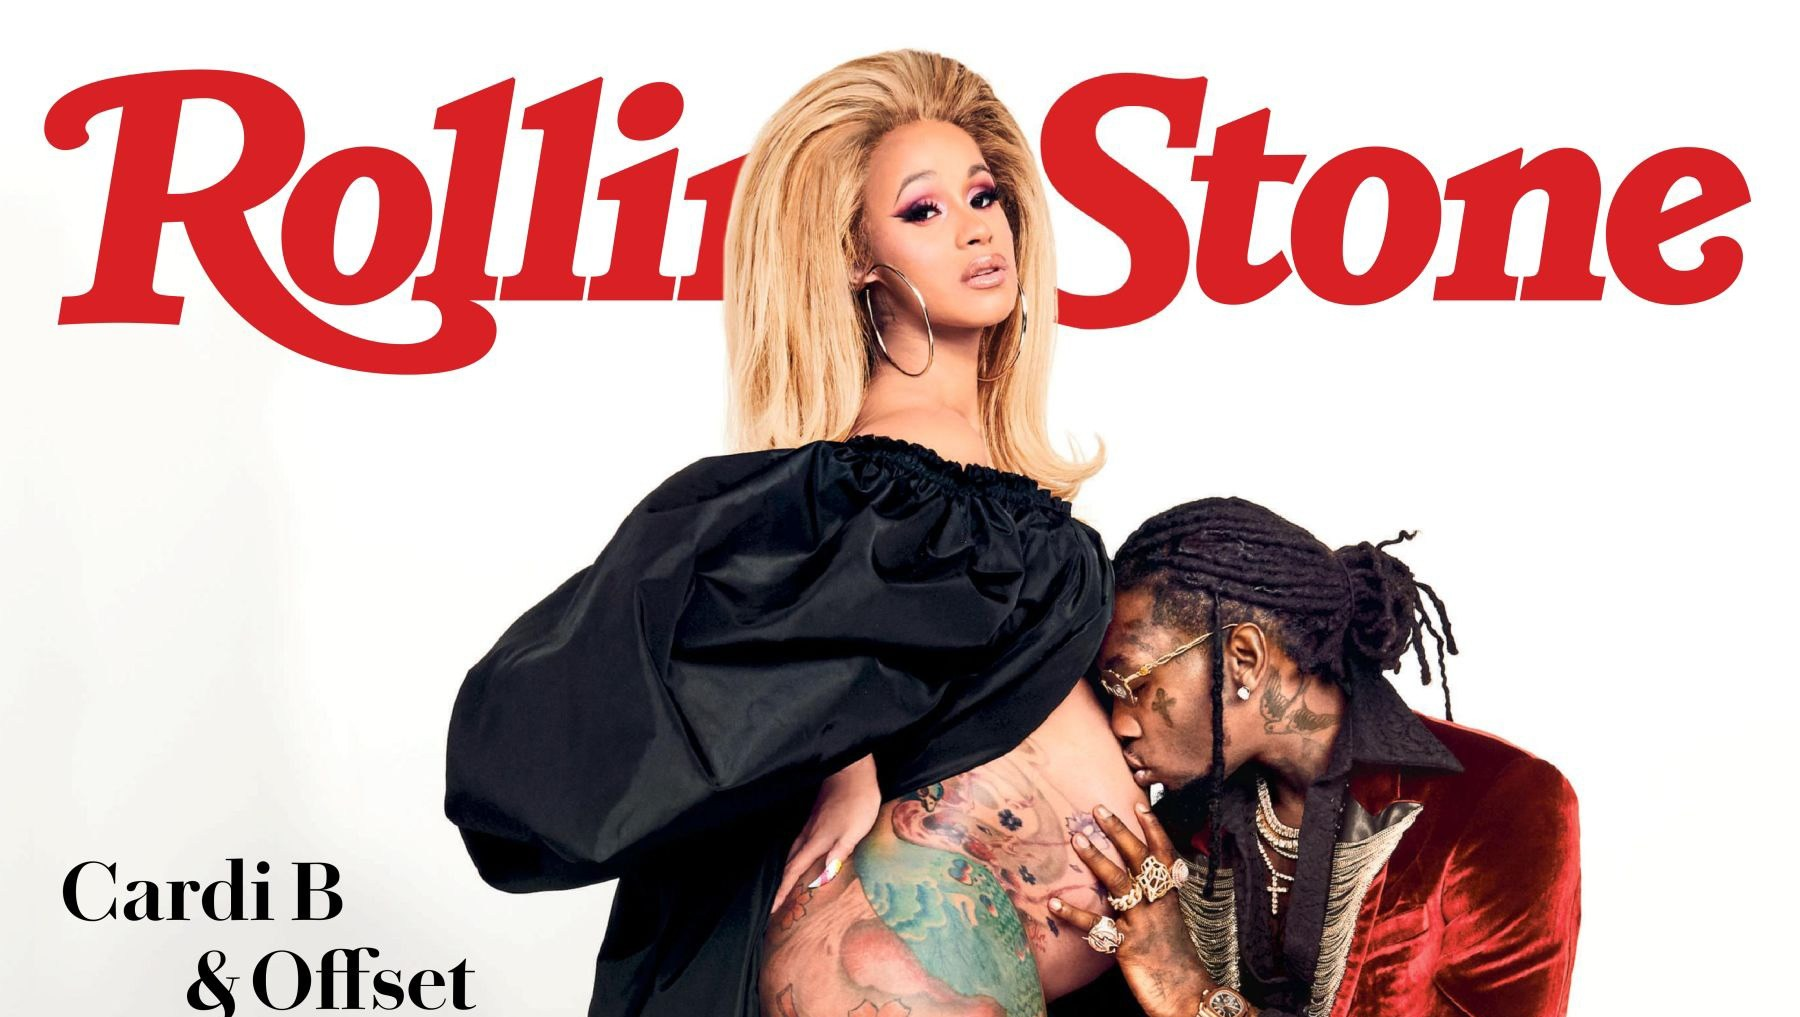 Cardi-B-and-Offset-Rolling-Stone-cover